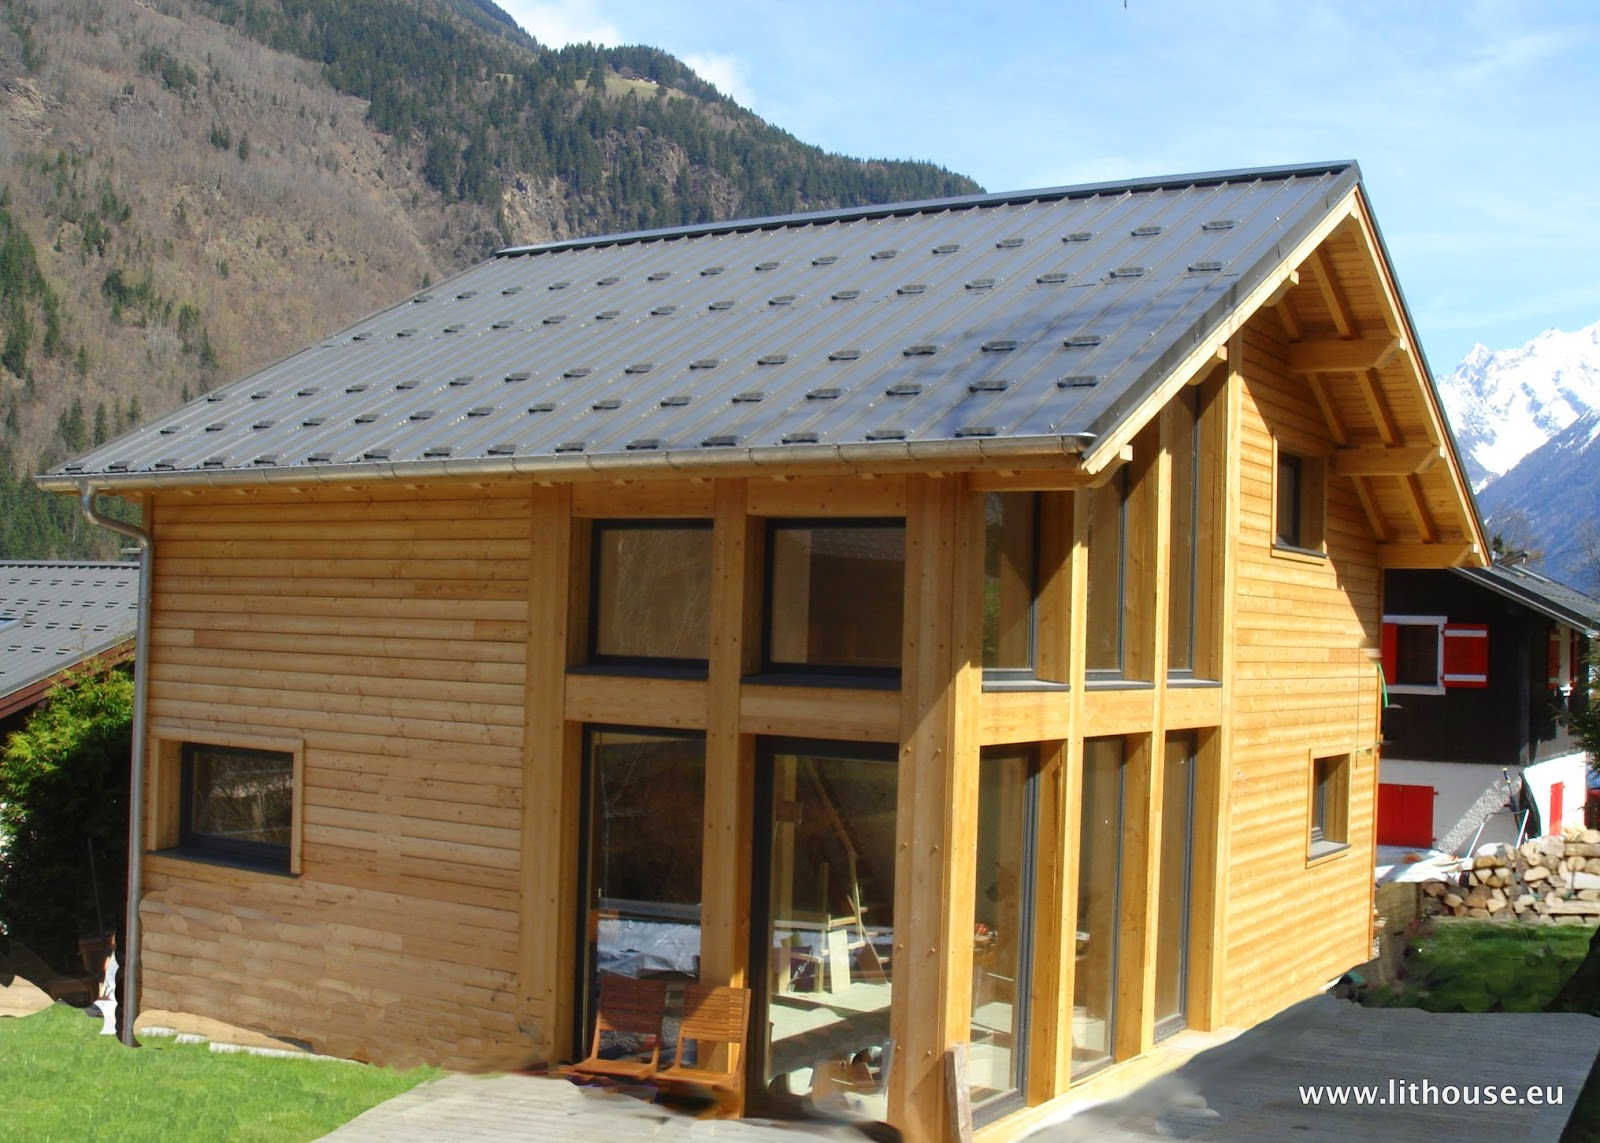 Building eco wooden house chalet construction for Building a chalet home